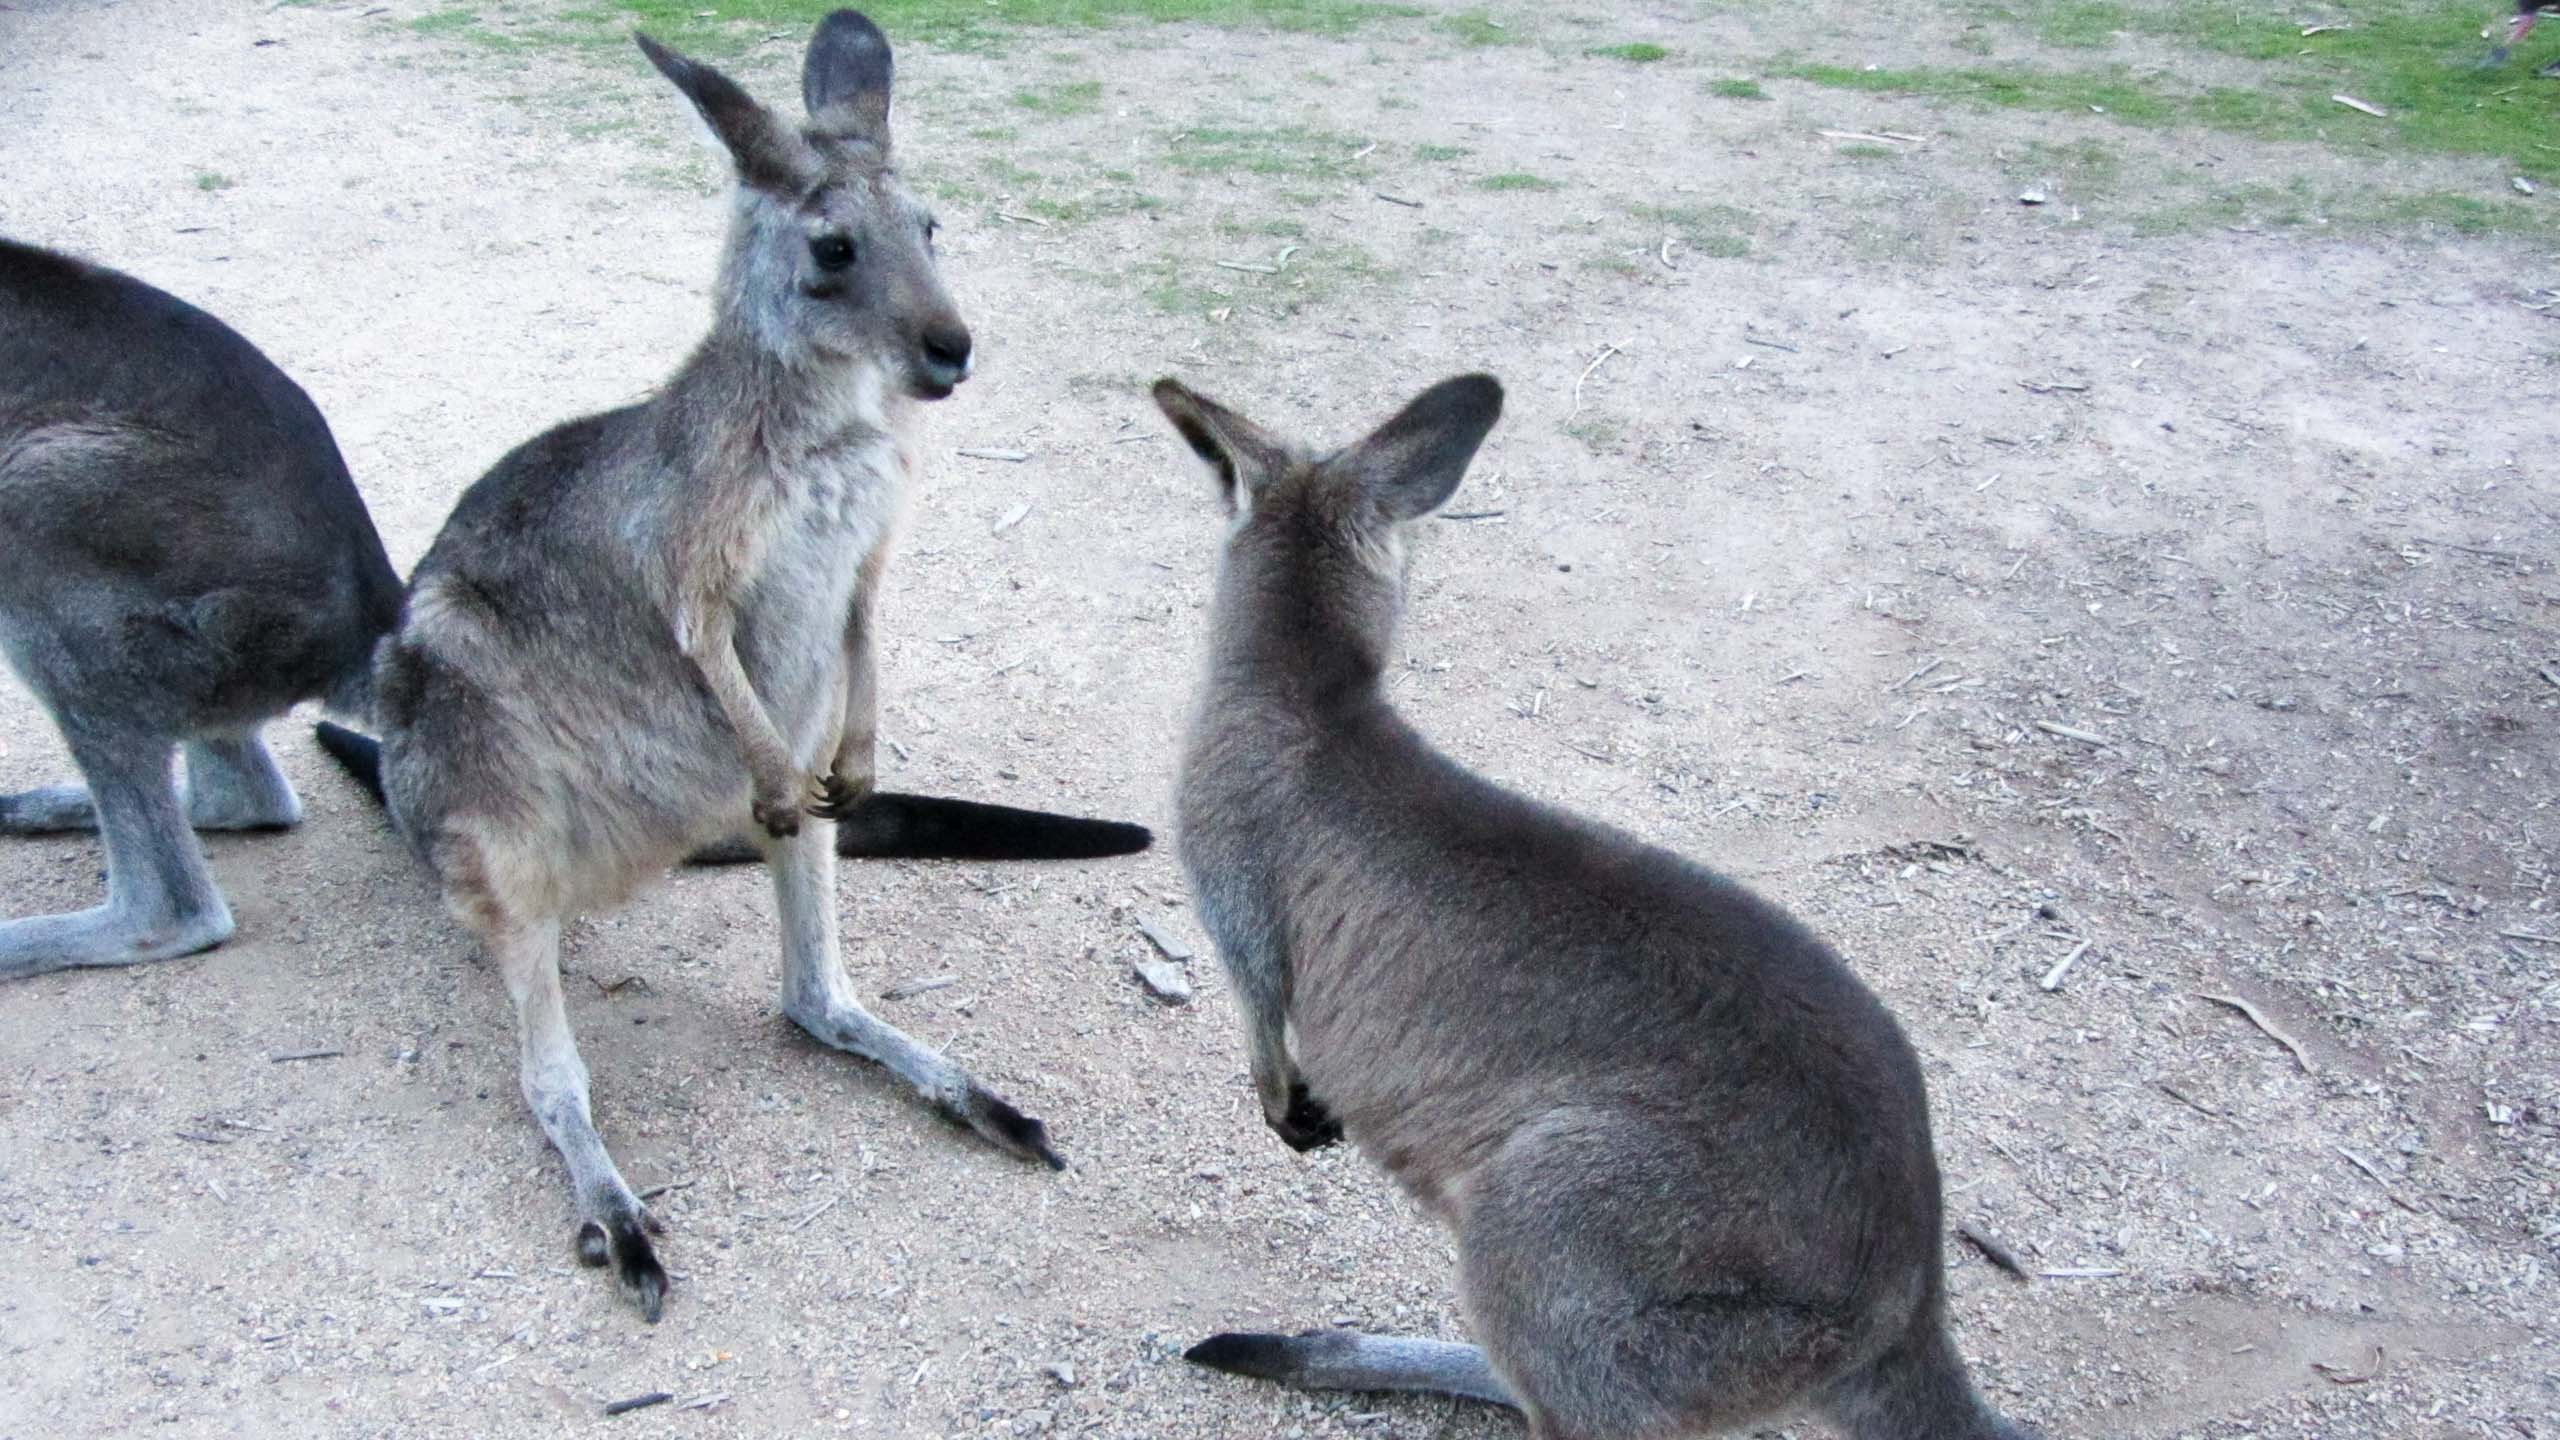 Two kangaroos face each other in Australia